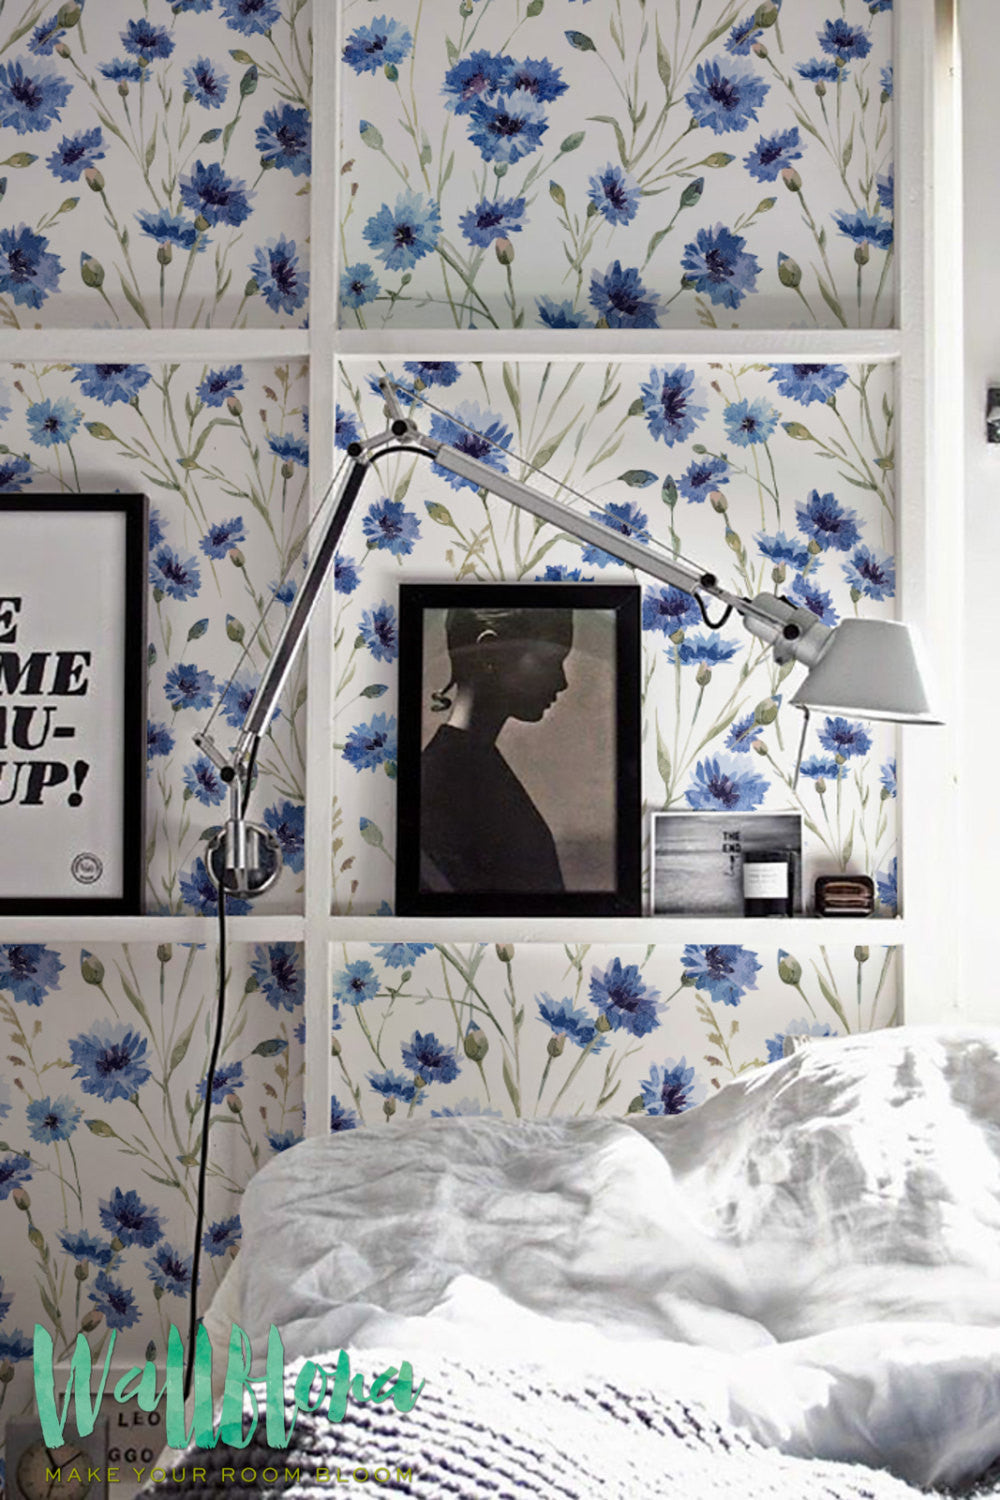 BLUE CORNFLOWER PATTERN WALLPAPER- THE SECRET TO GREAT-LOOKING WALLS